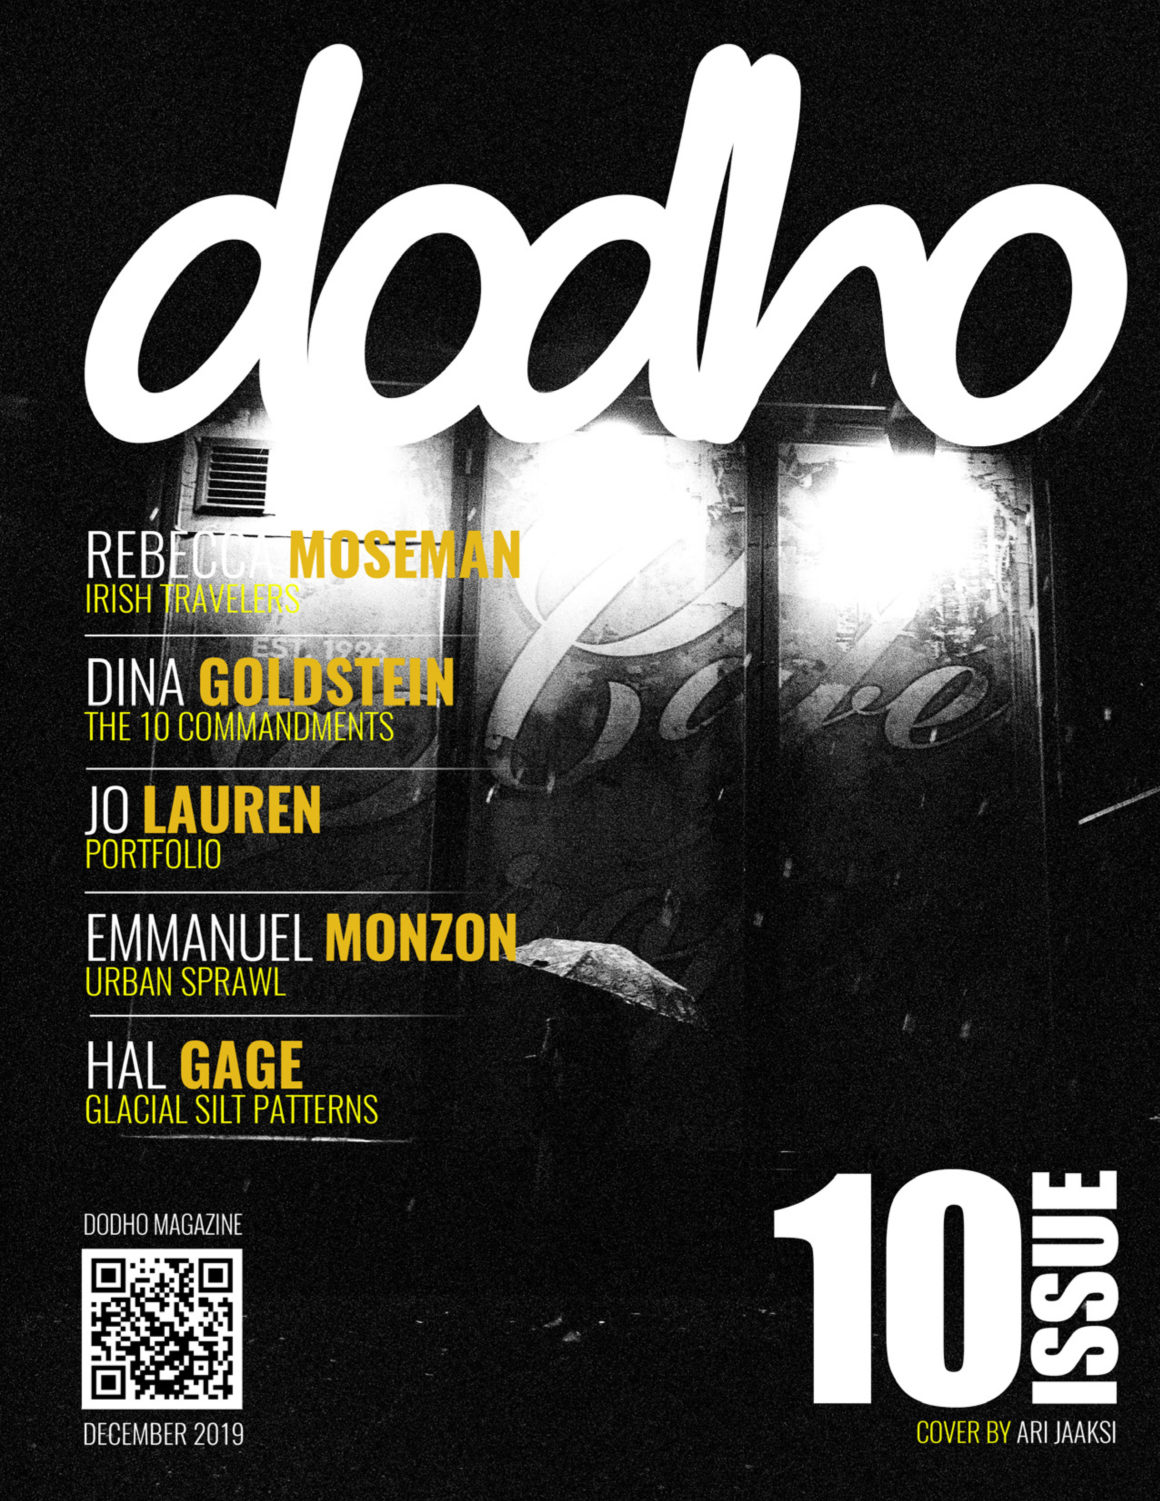 Doho magazine cover featuring the work of Dina Goldstein